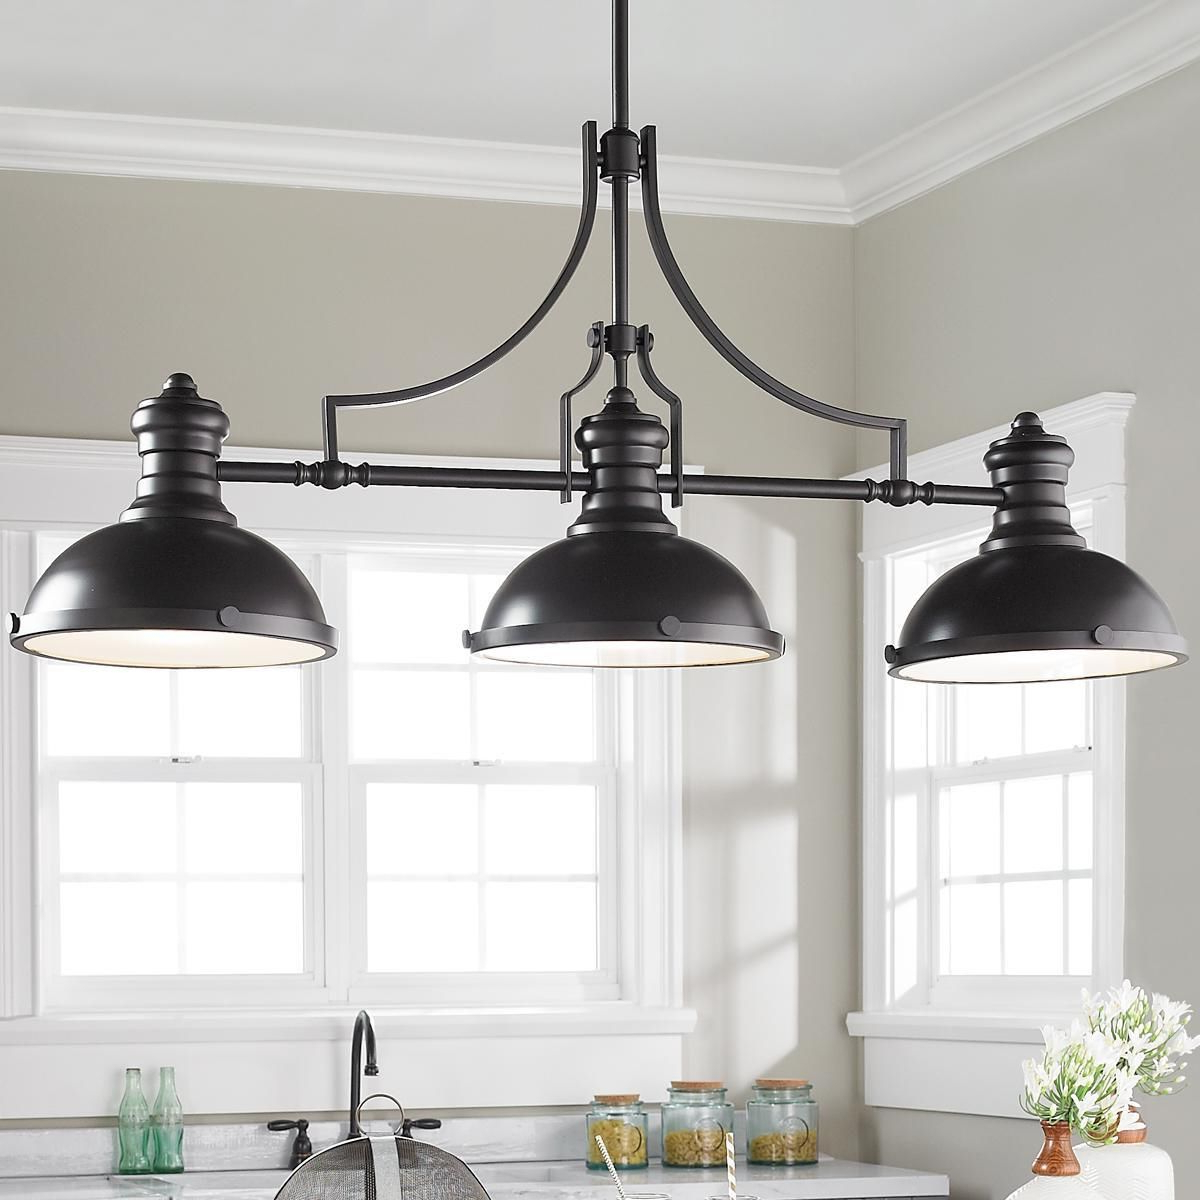 Ariel 2 Light Kitchen Island Dome Pendants Intended For Most Current Craftsman Period Island Chandelier – 3 Light (Gallery 10 of 20)